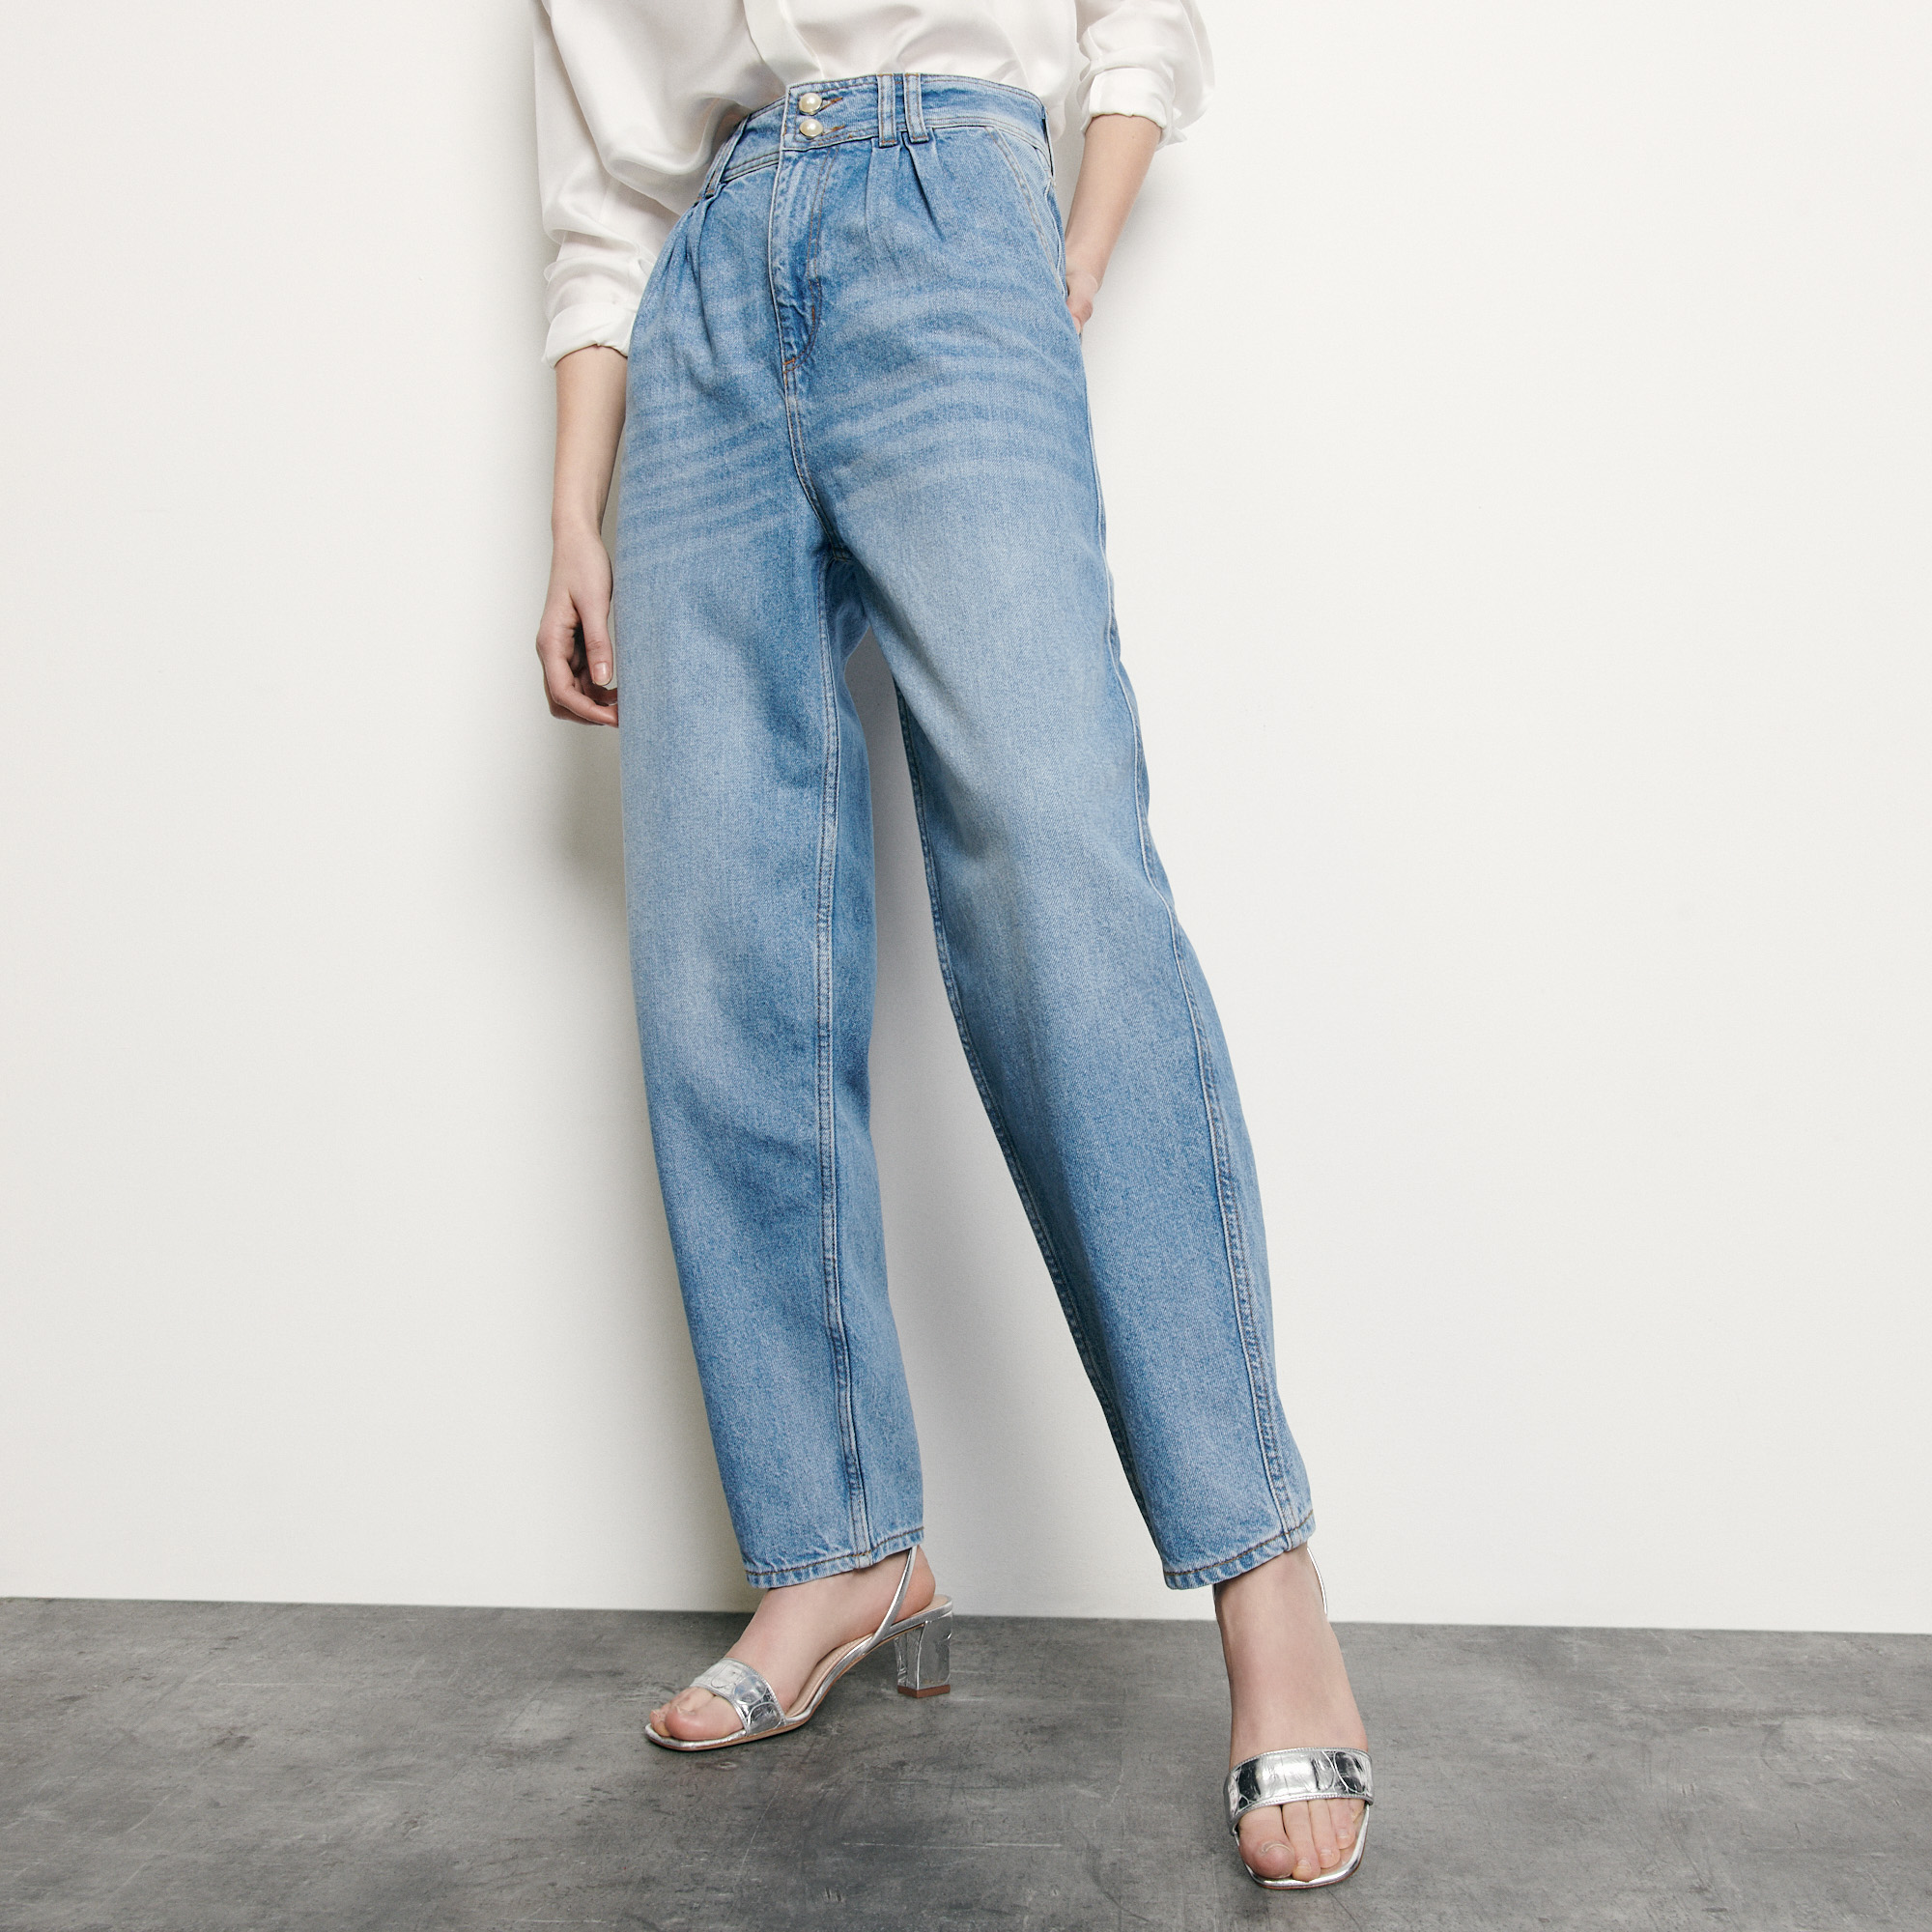 High waisted jeans with pearls buttons - Denim